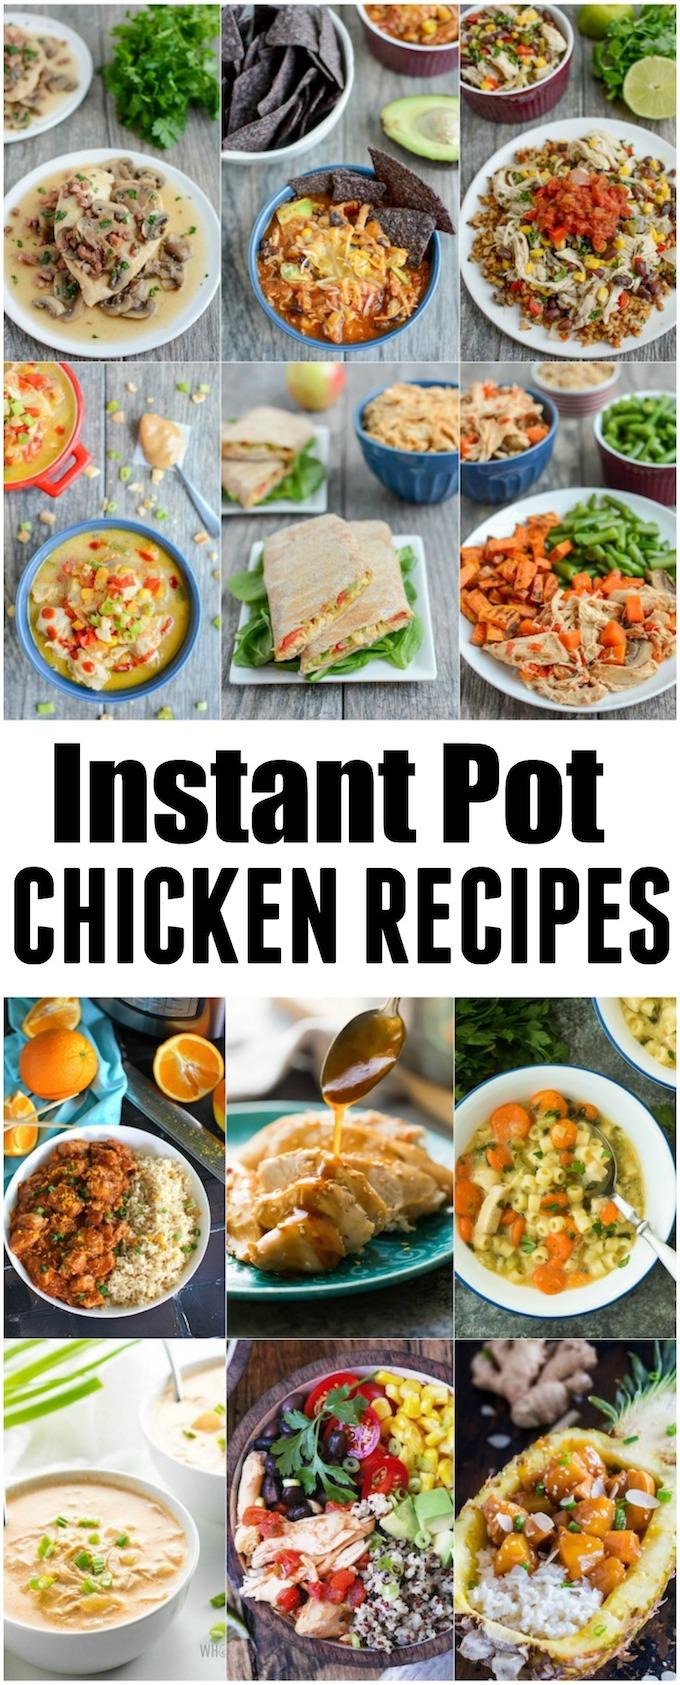 These Instant Pot Chicken Recipes are perfect for easy, healthy dinners. Plus you can pack the leftovers for lunch!